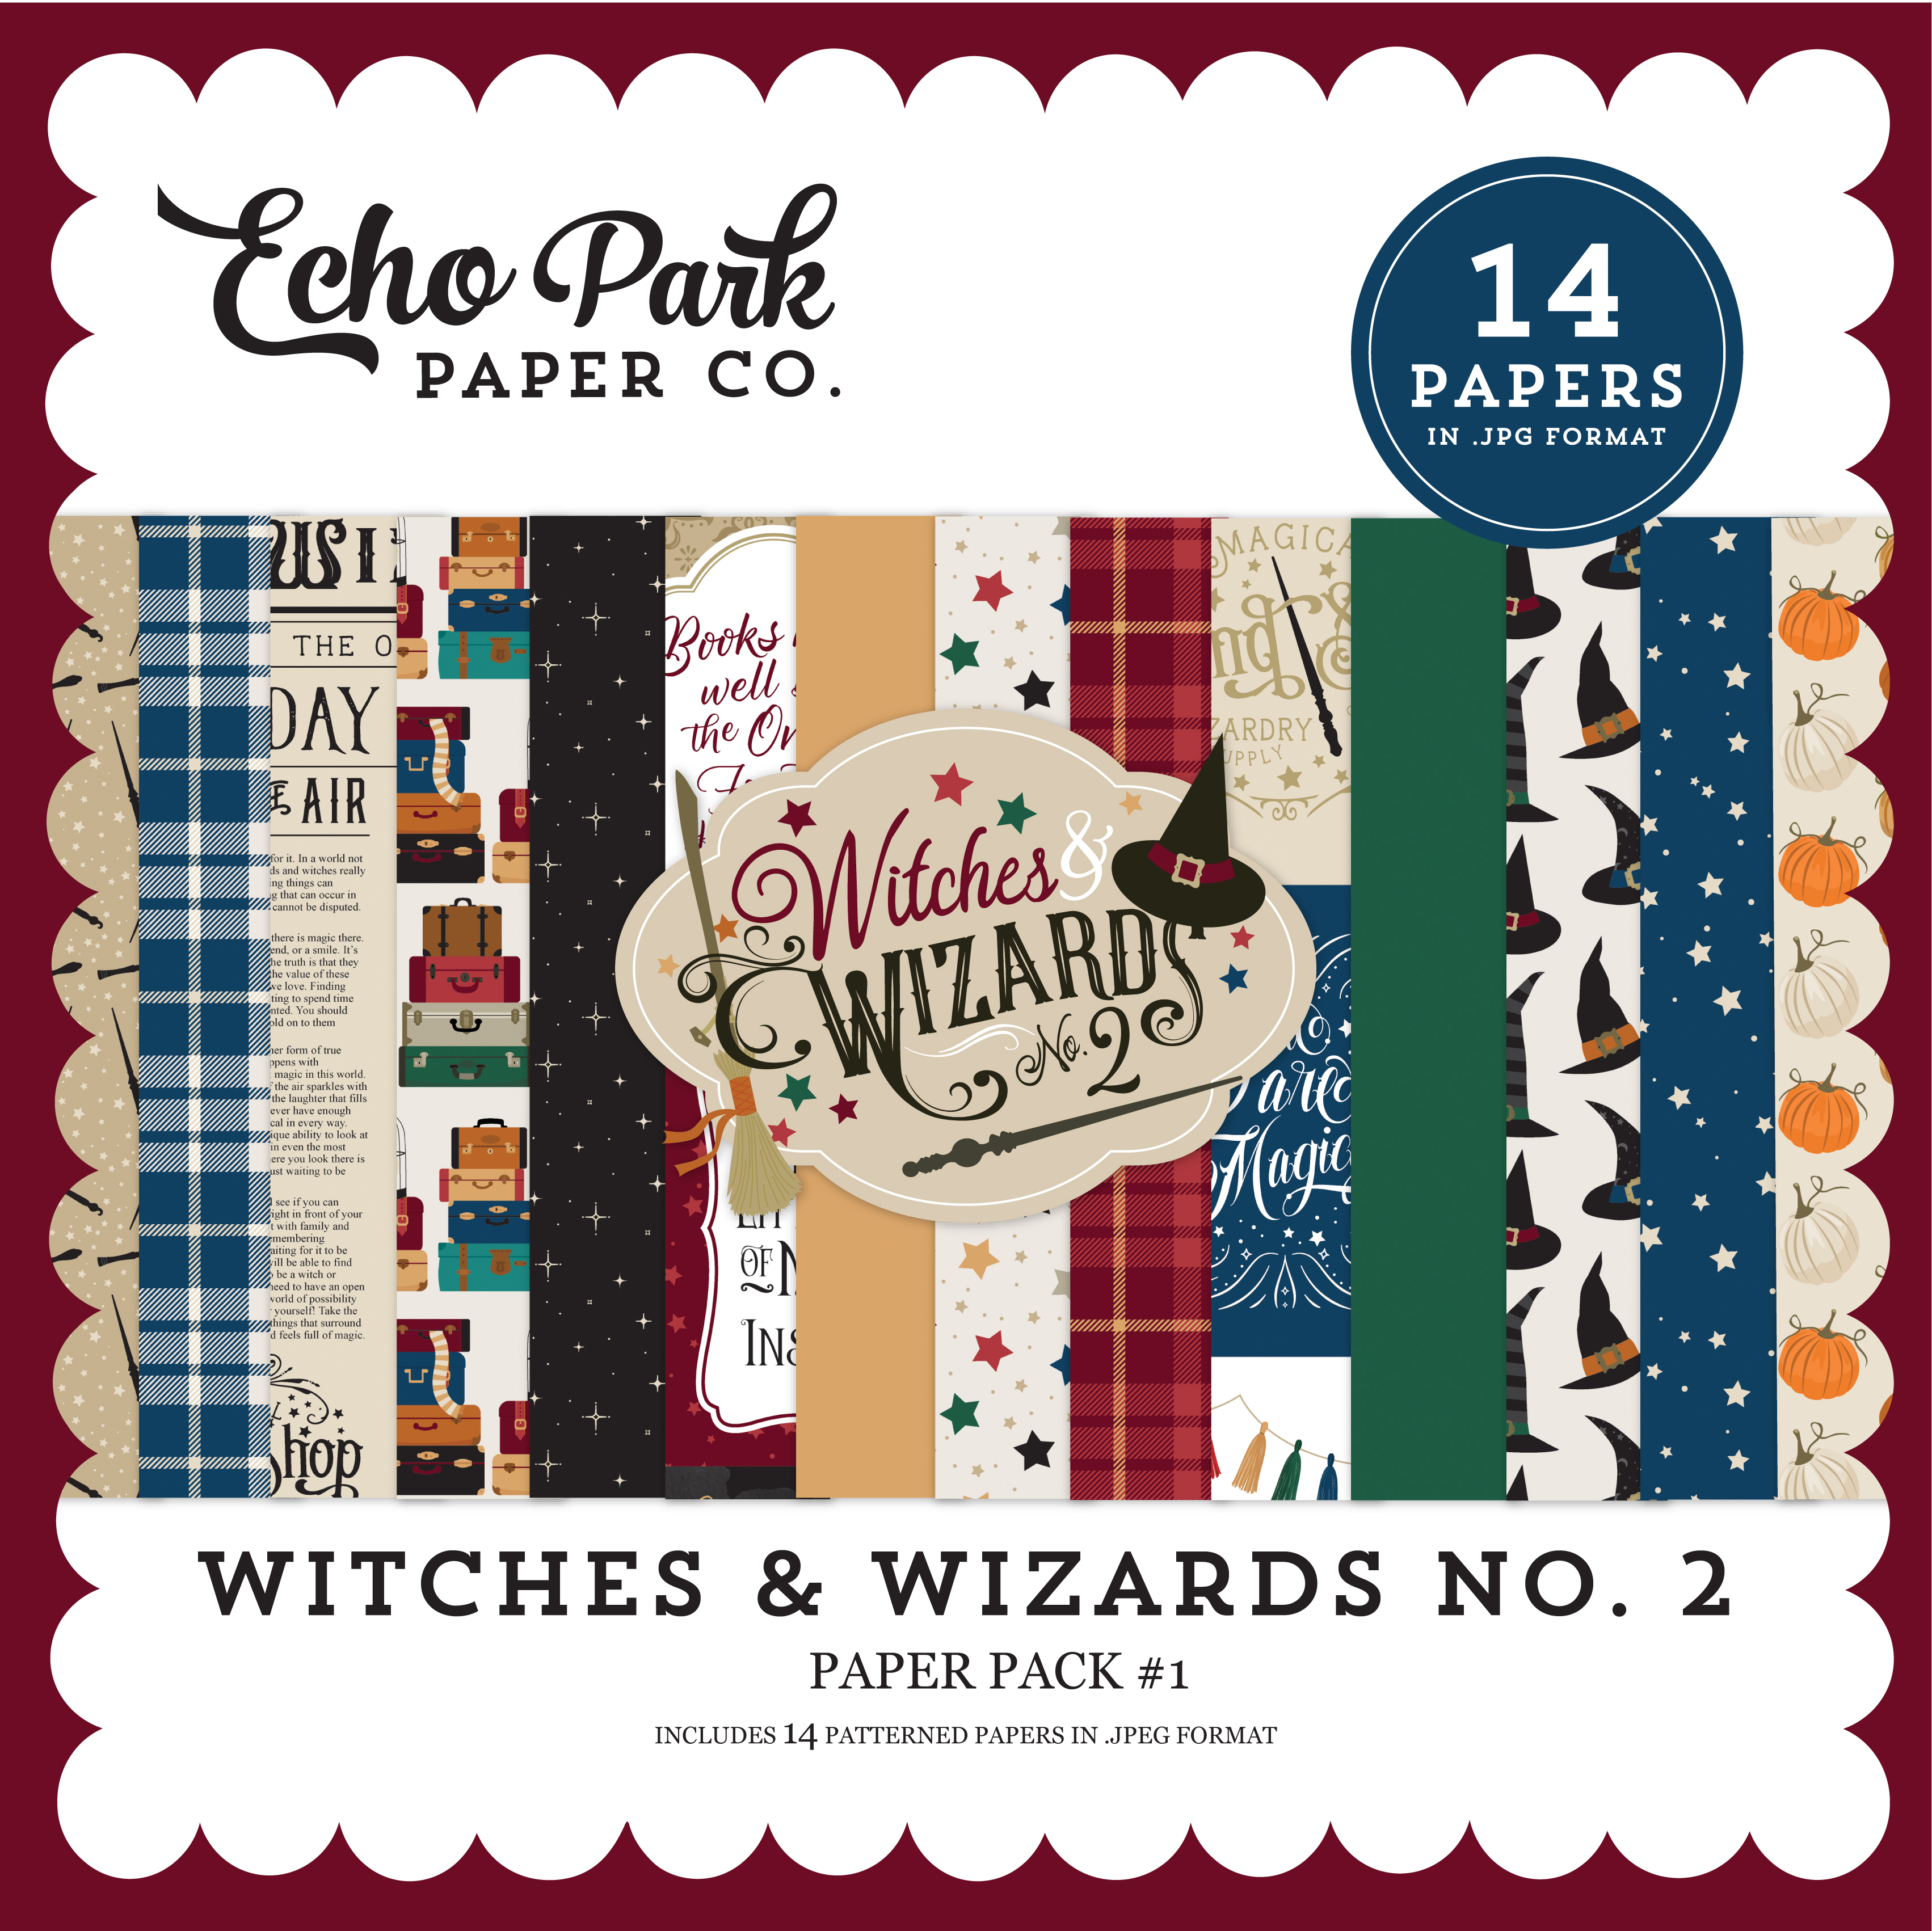 Witches & Wizards No. 2 Mega Collection